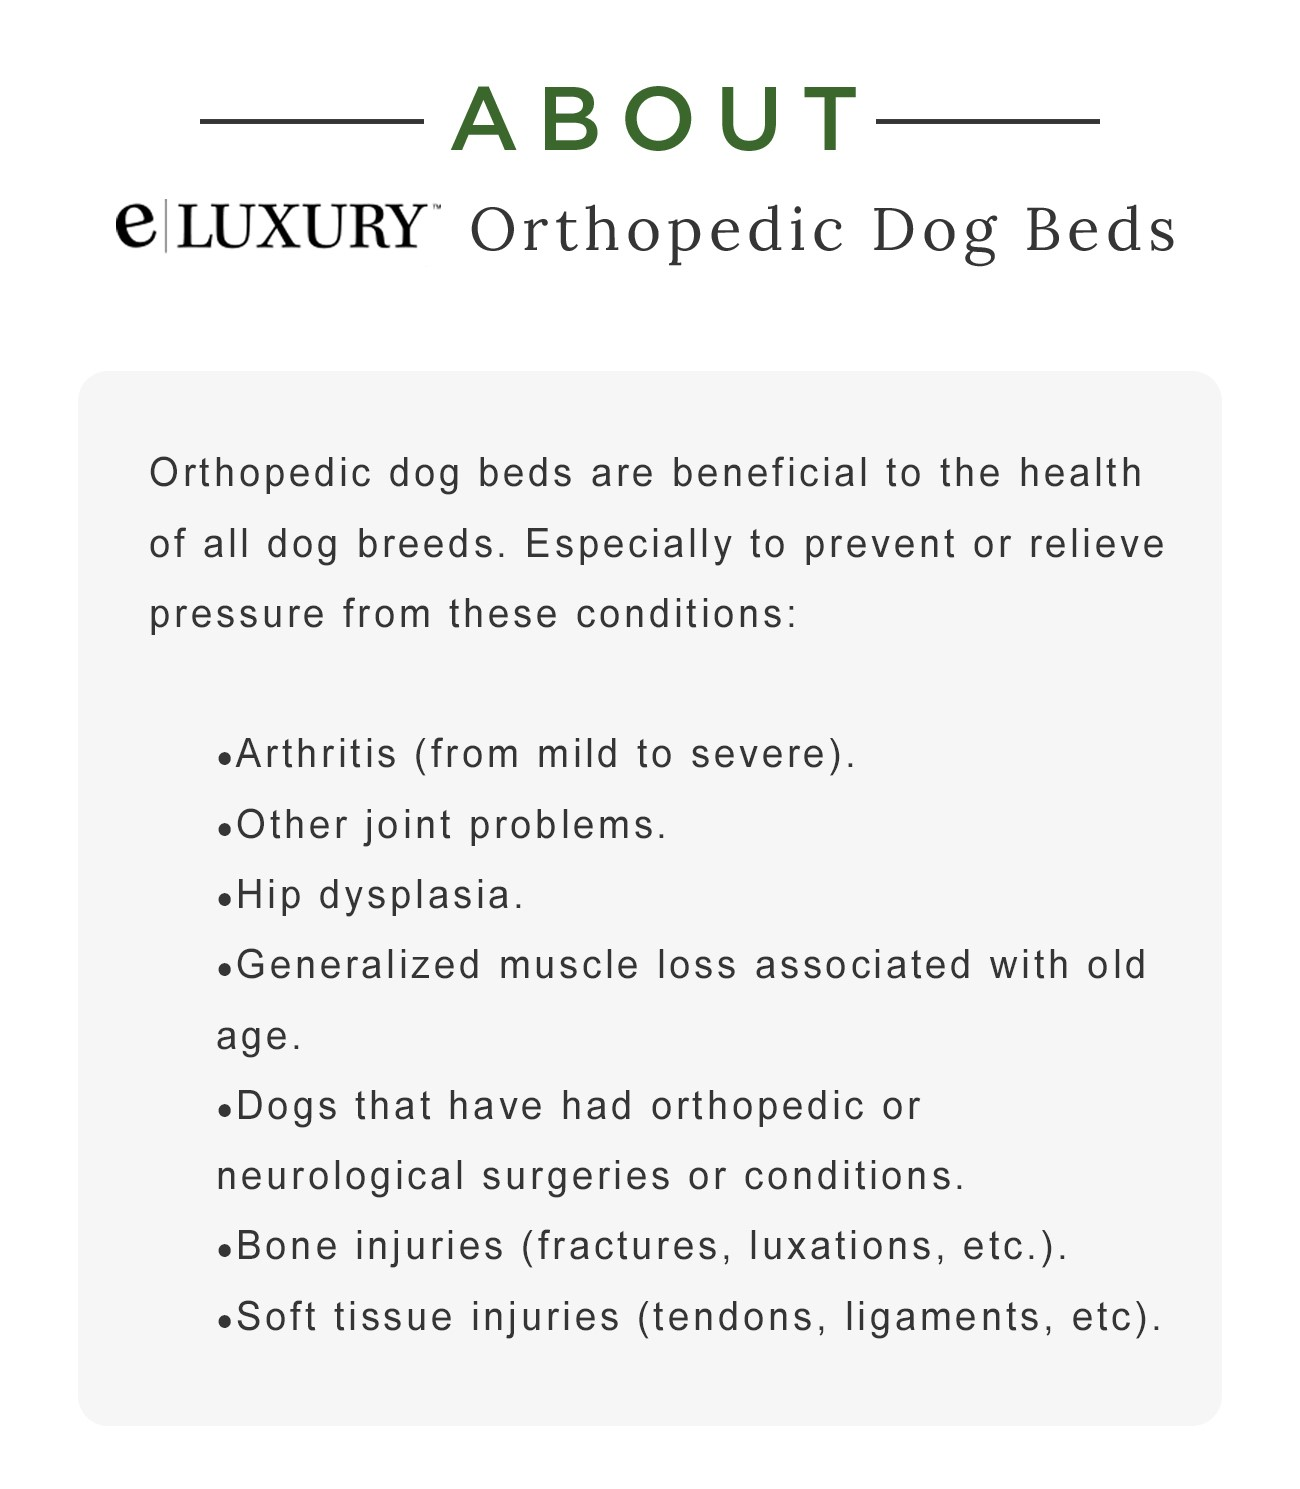 About e|Luxury Orthopedic Dog Beds - Orthopedic dog beds are beneficial to the health of all dog breeds